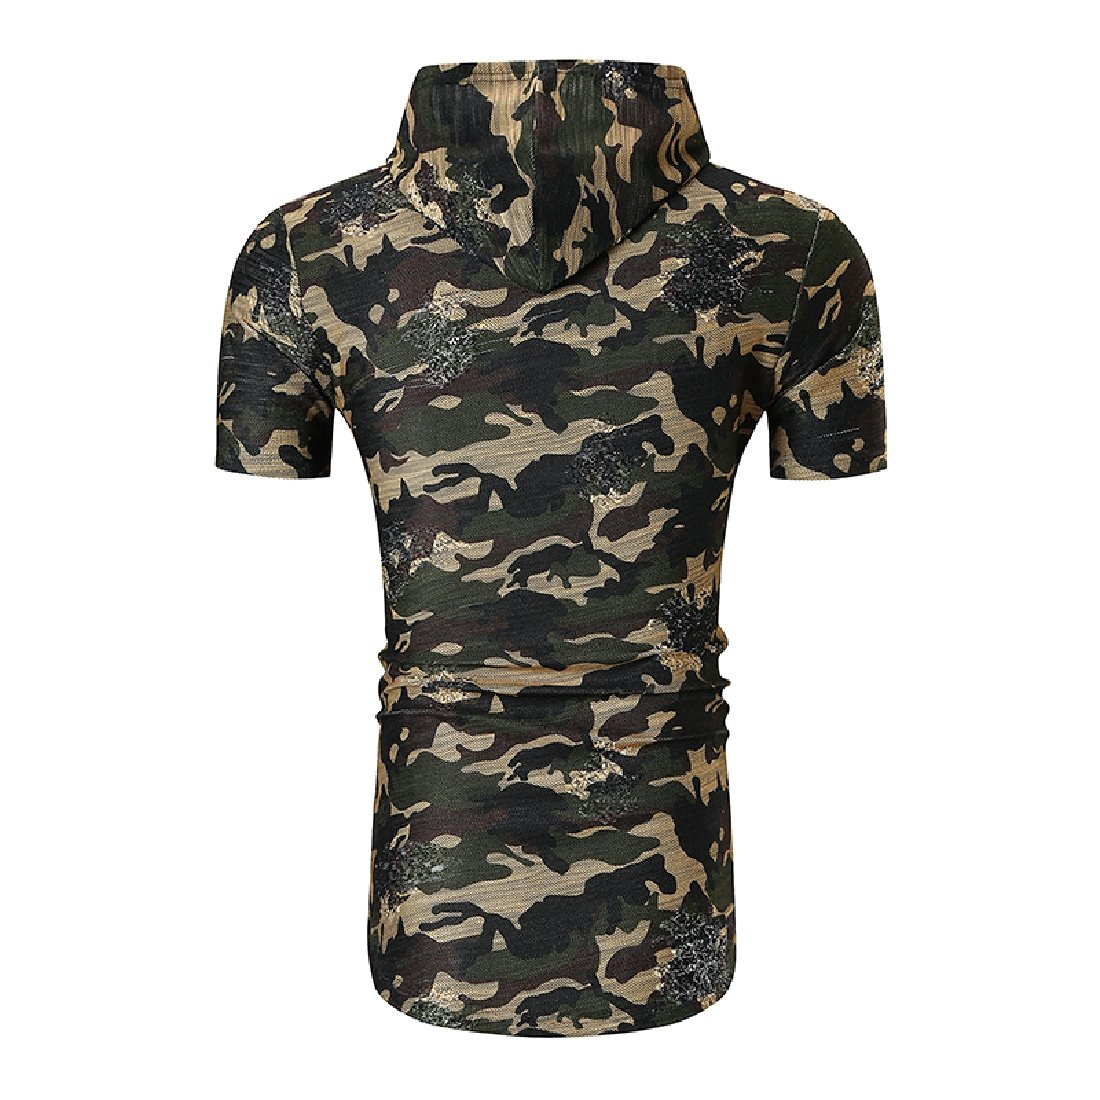 Aooword Mens Curved Hem Short Sleeve Ripped Camo T-Shirts with Hood